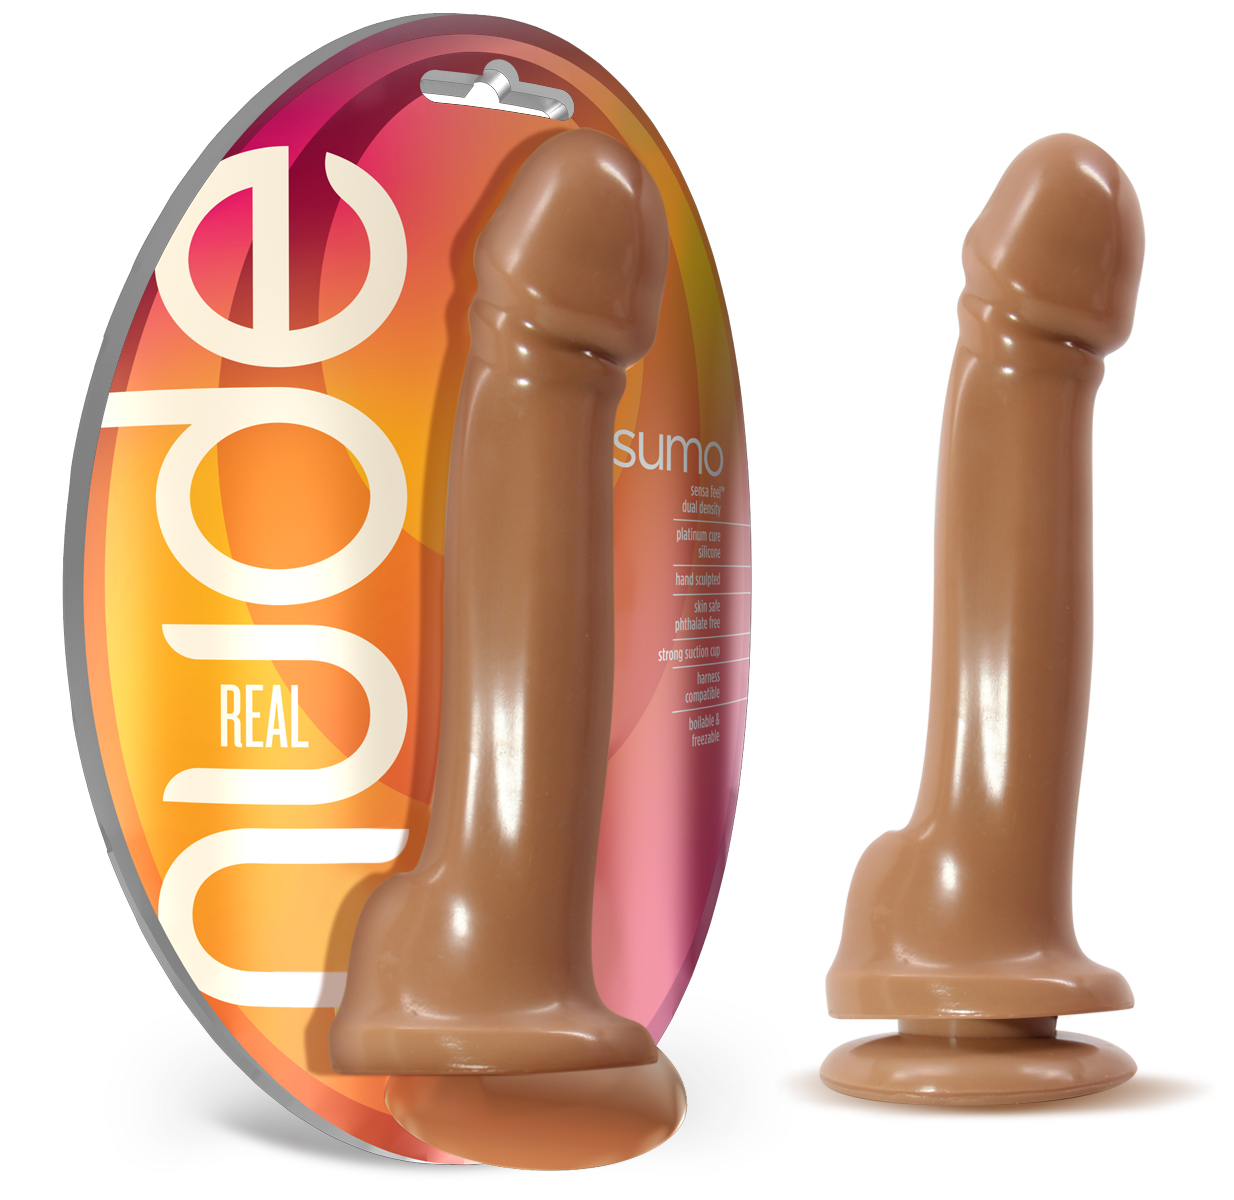 Real Nude - Sumo - Toffee